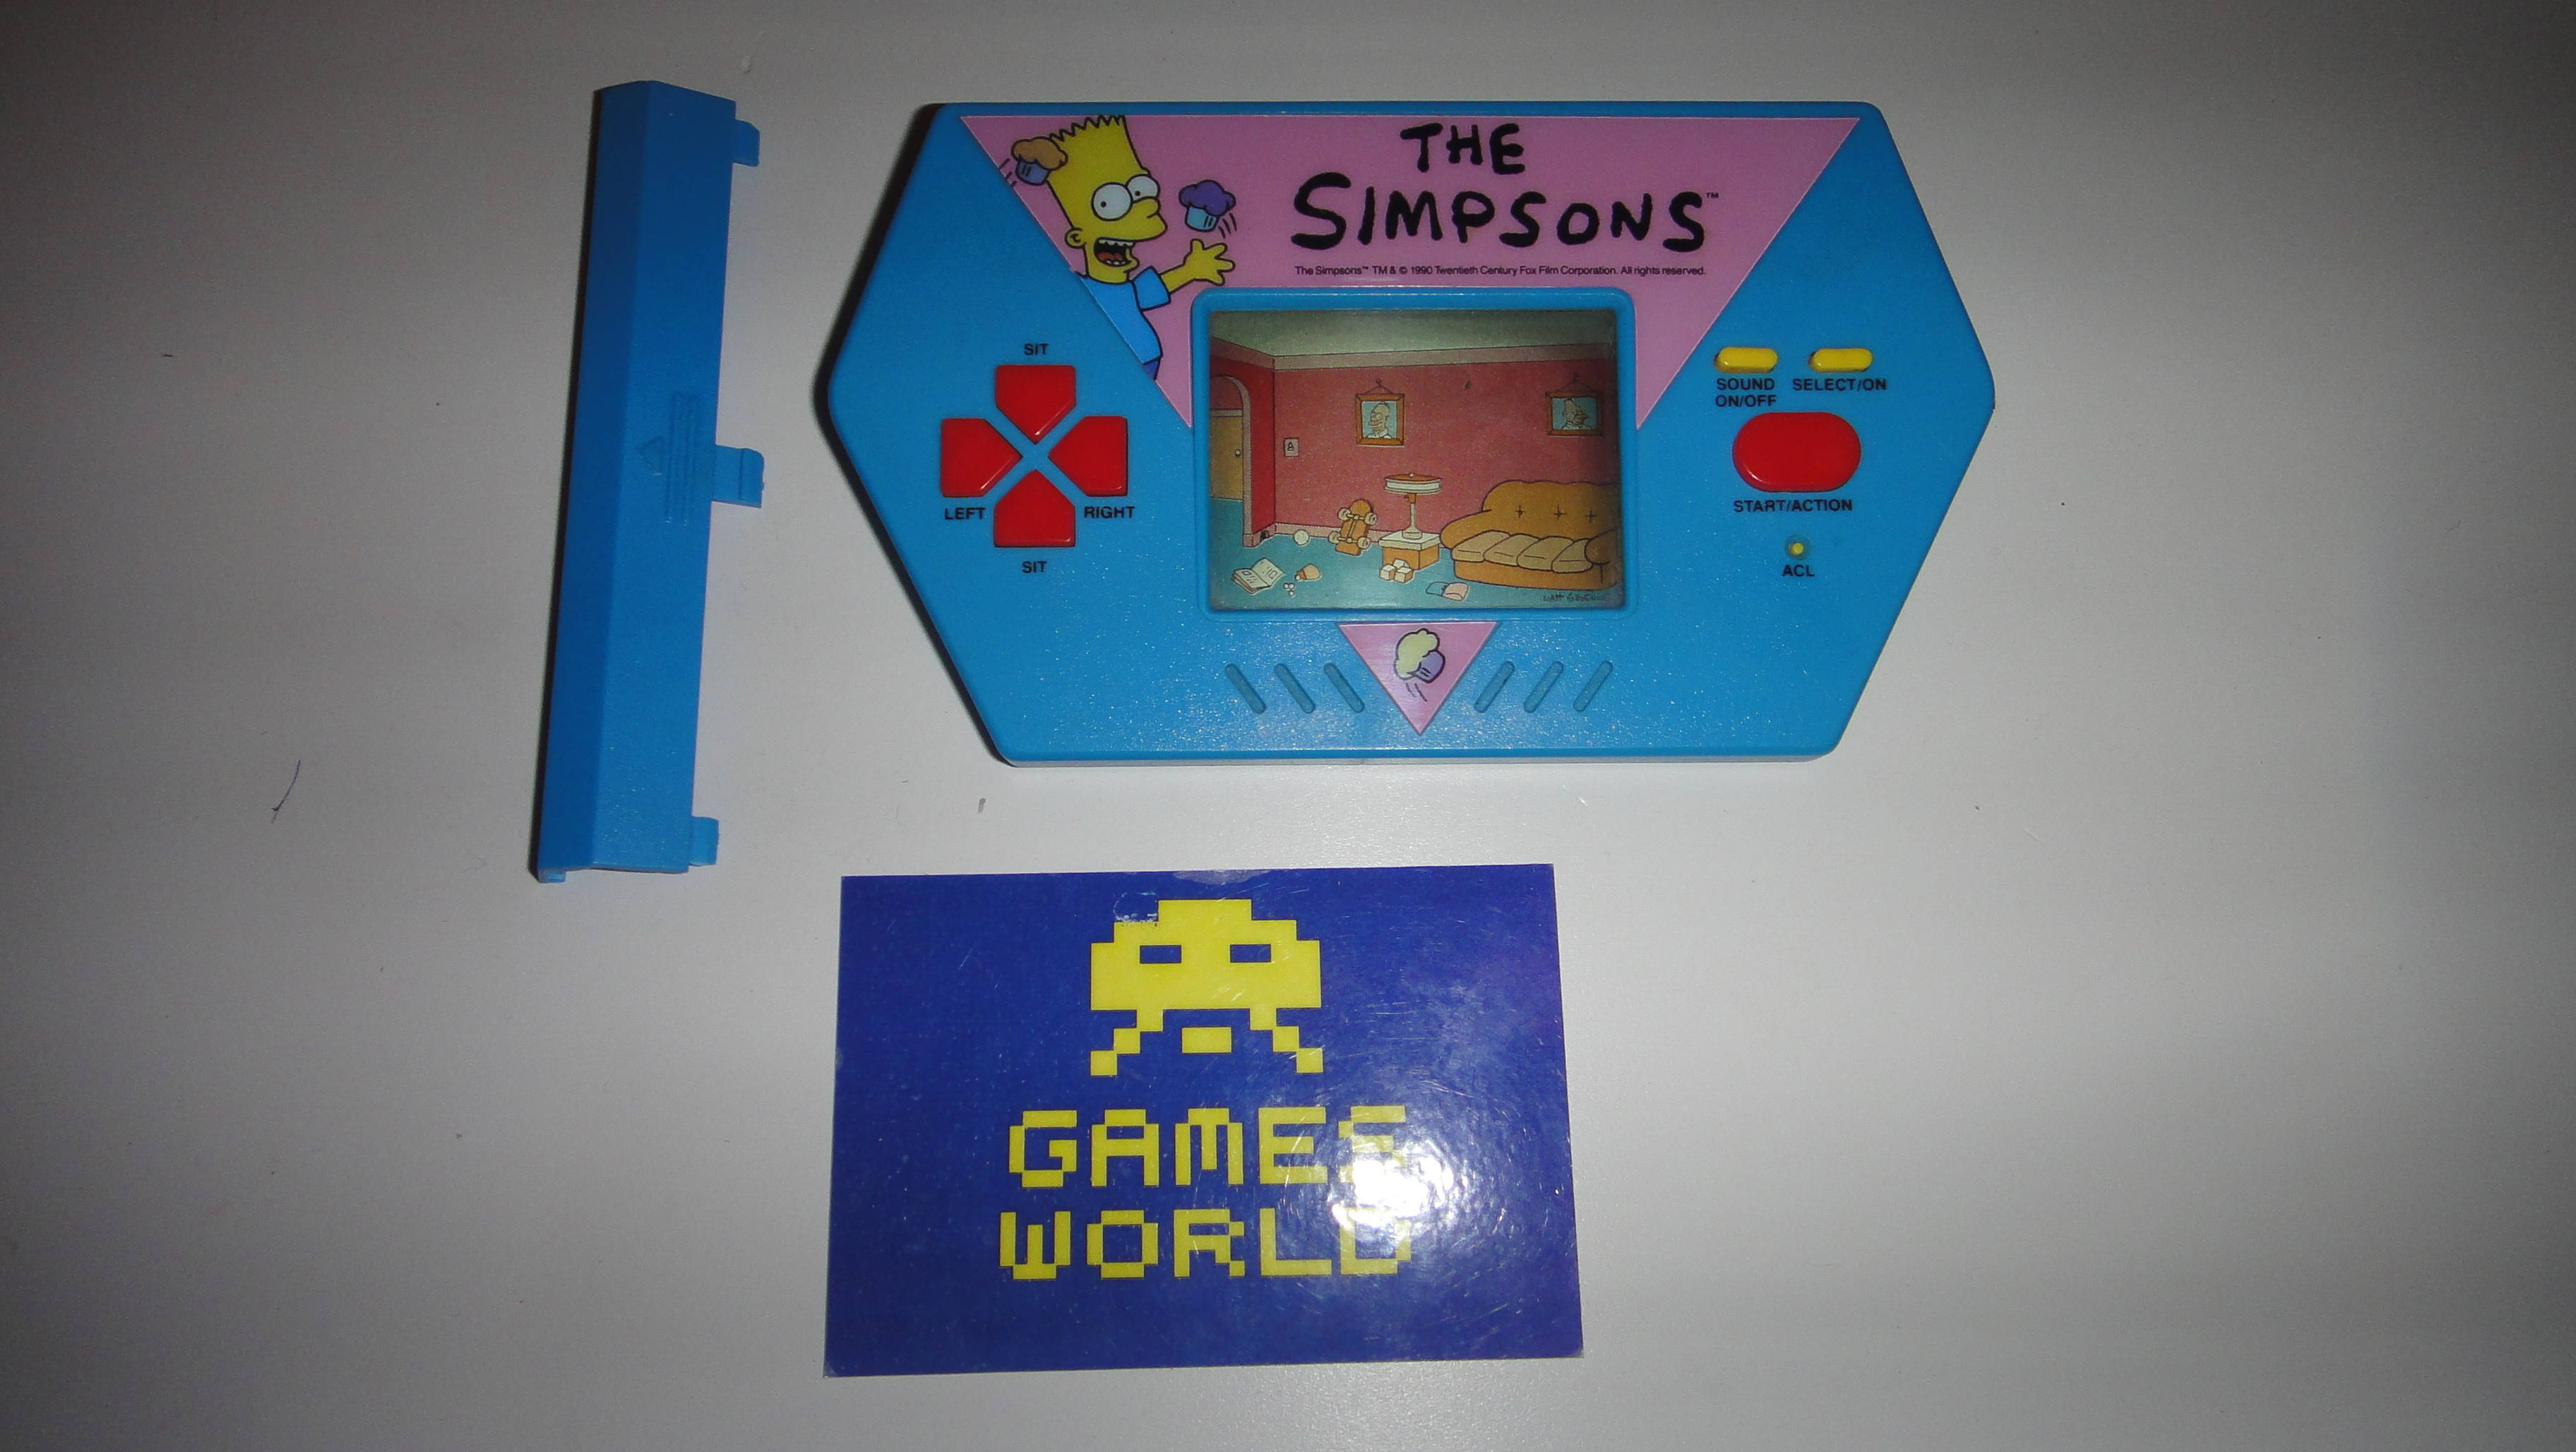 The Simpsons LCD Game